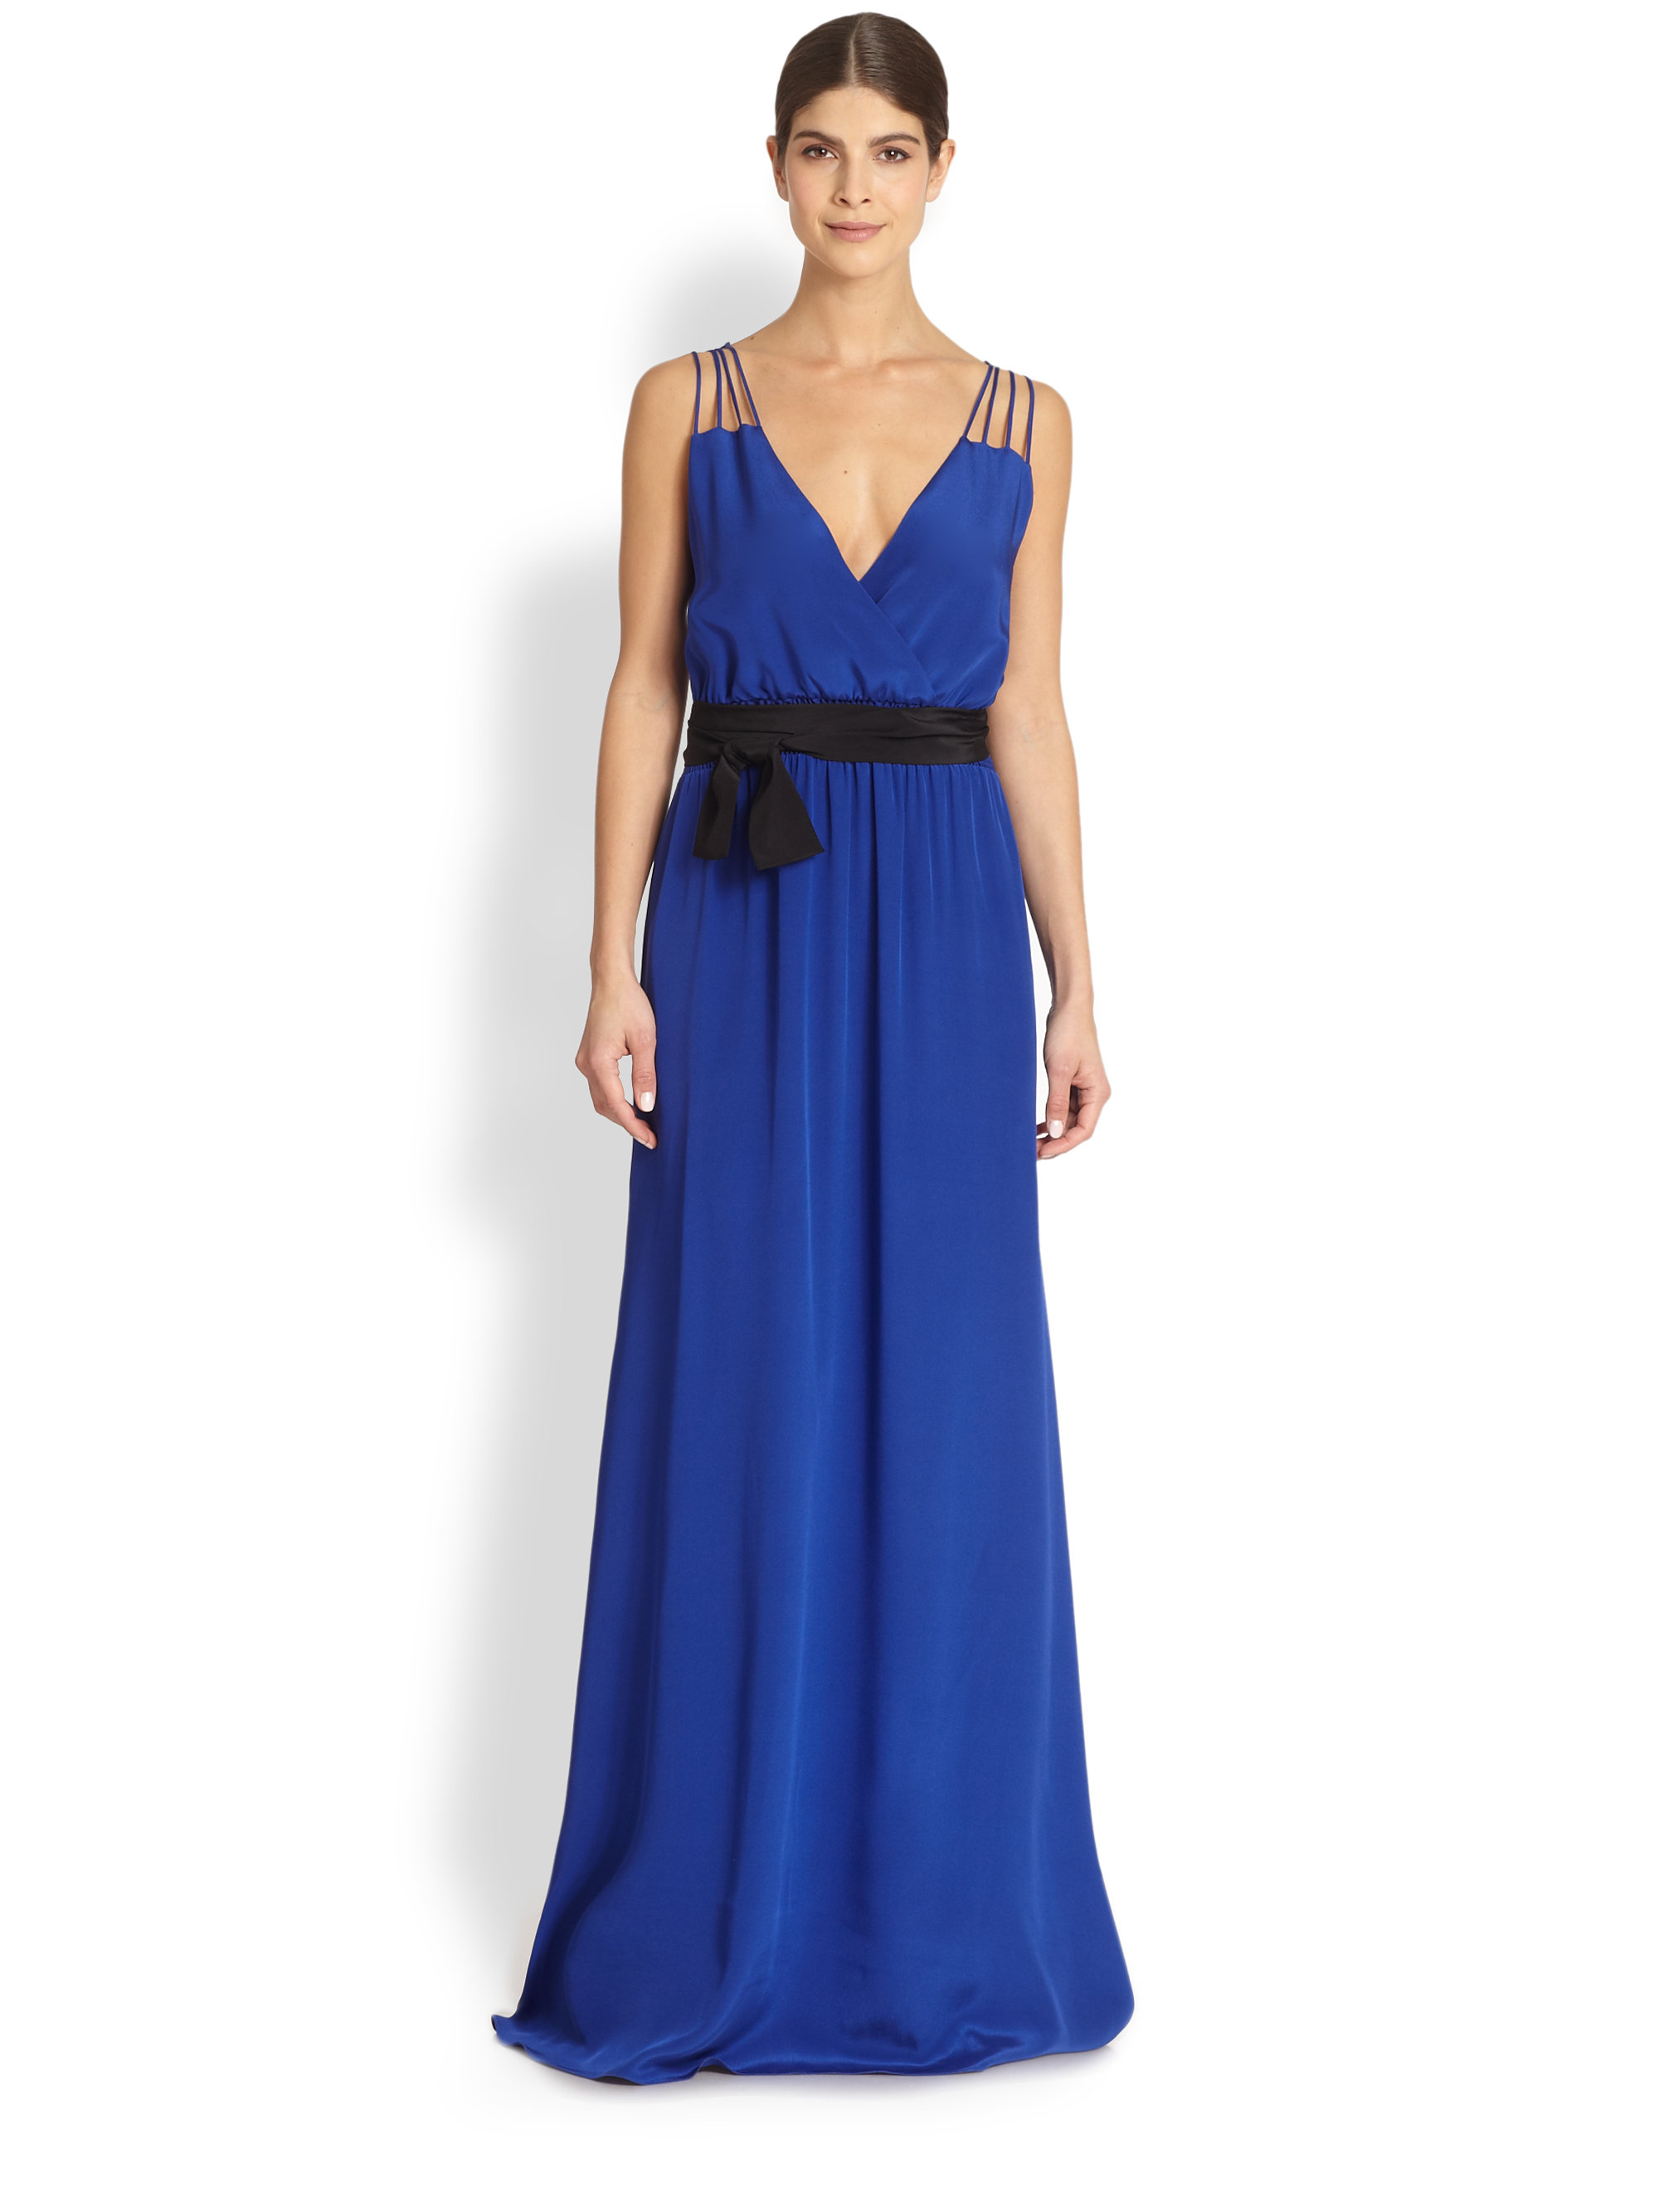 Great option for summer dates. Best on taller frames. Amanda Uprichard Silk Maxi Dress available at Find this Pin and more on Sexy Date Looks & Tips by Teresa Foss Del Rosso. royal blue silk maxi- .